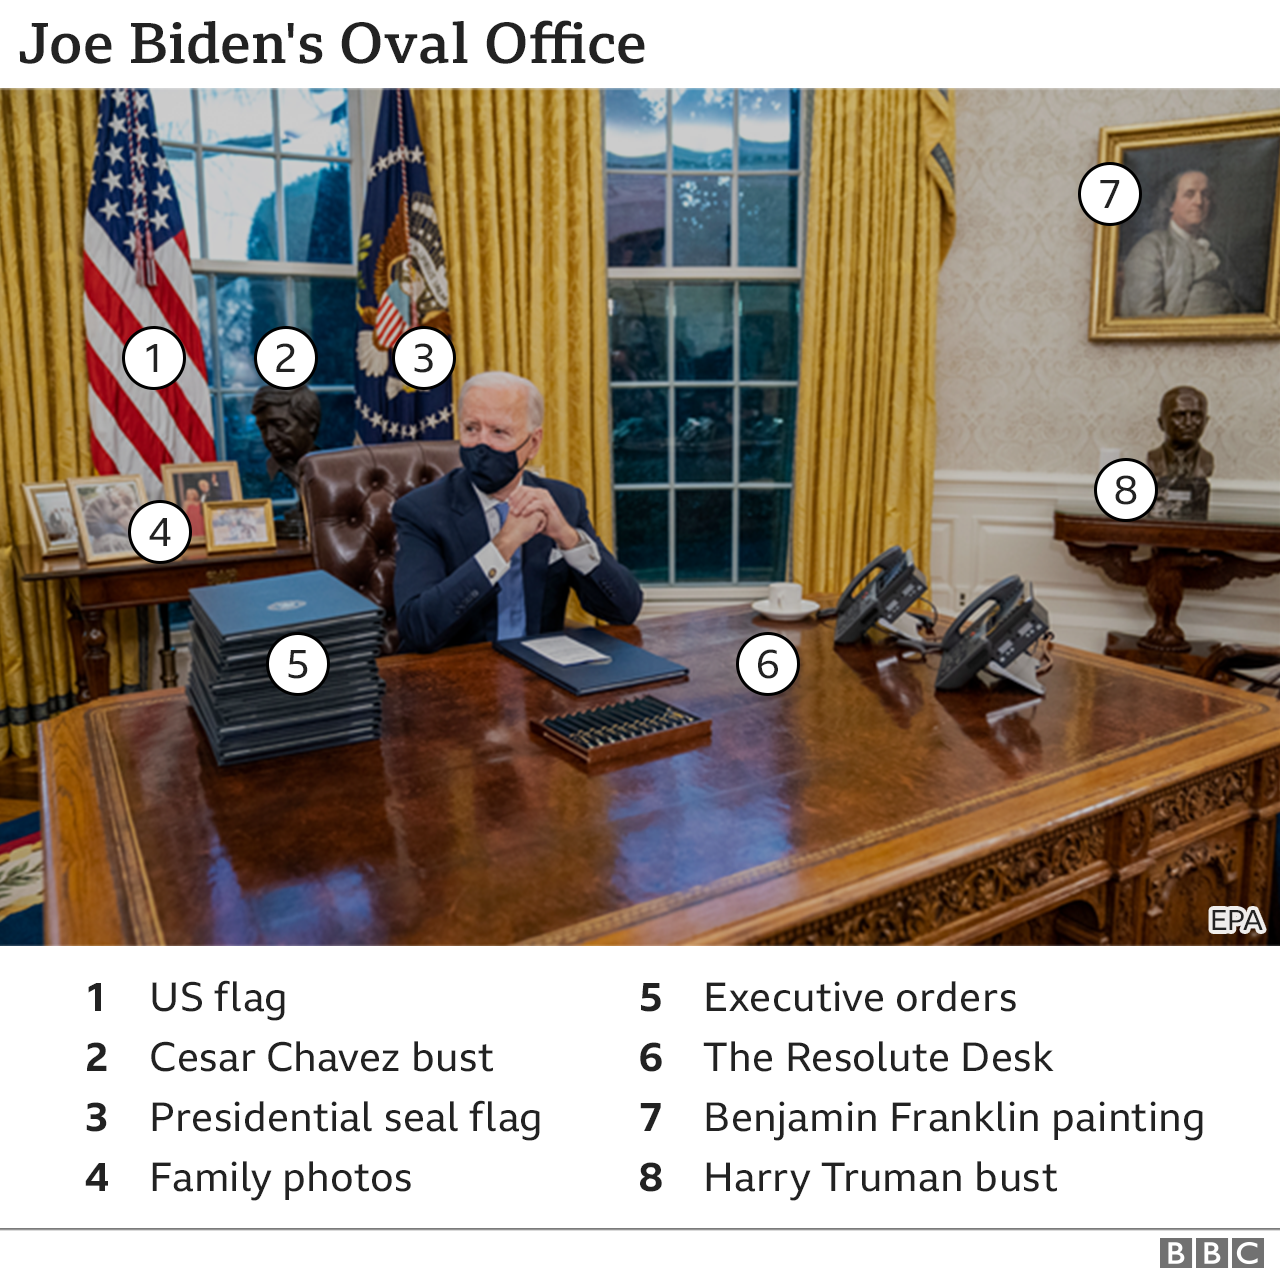 Annotated picture of Joe Biden's Oval Office